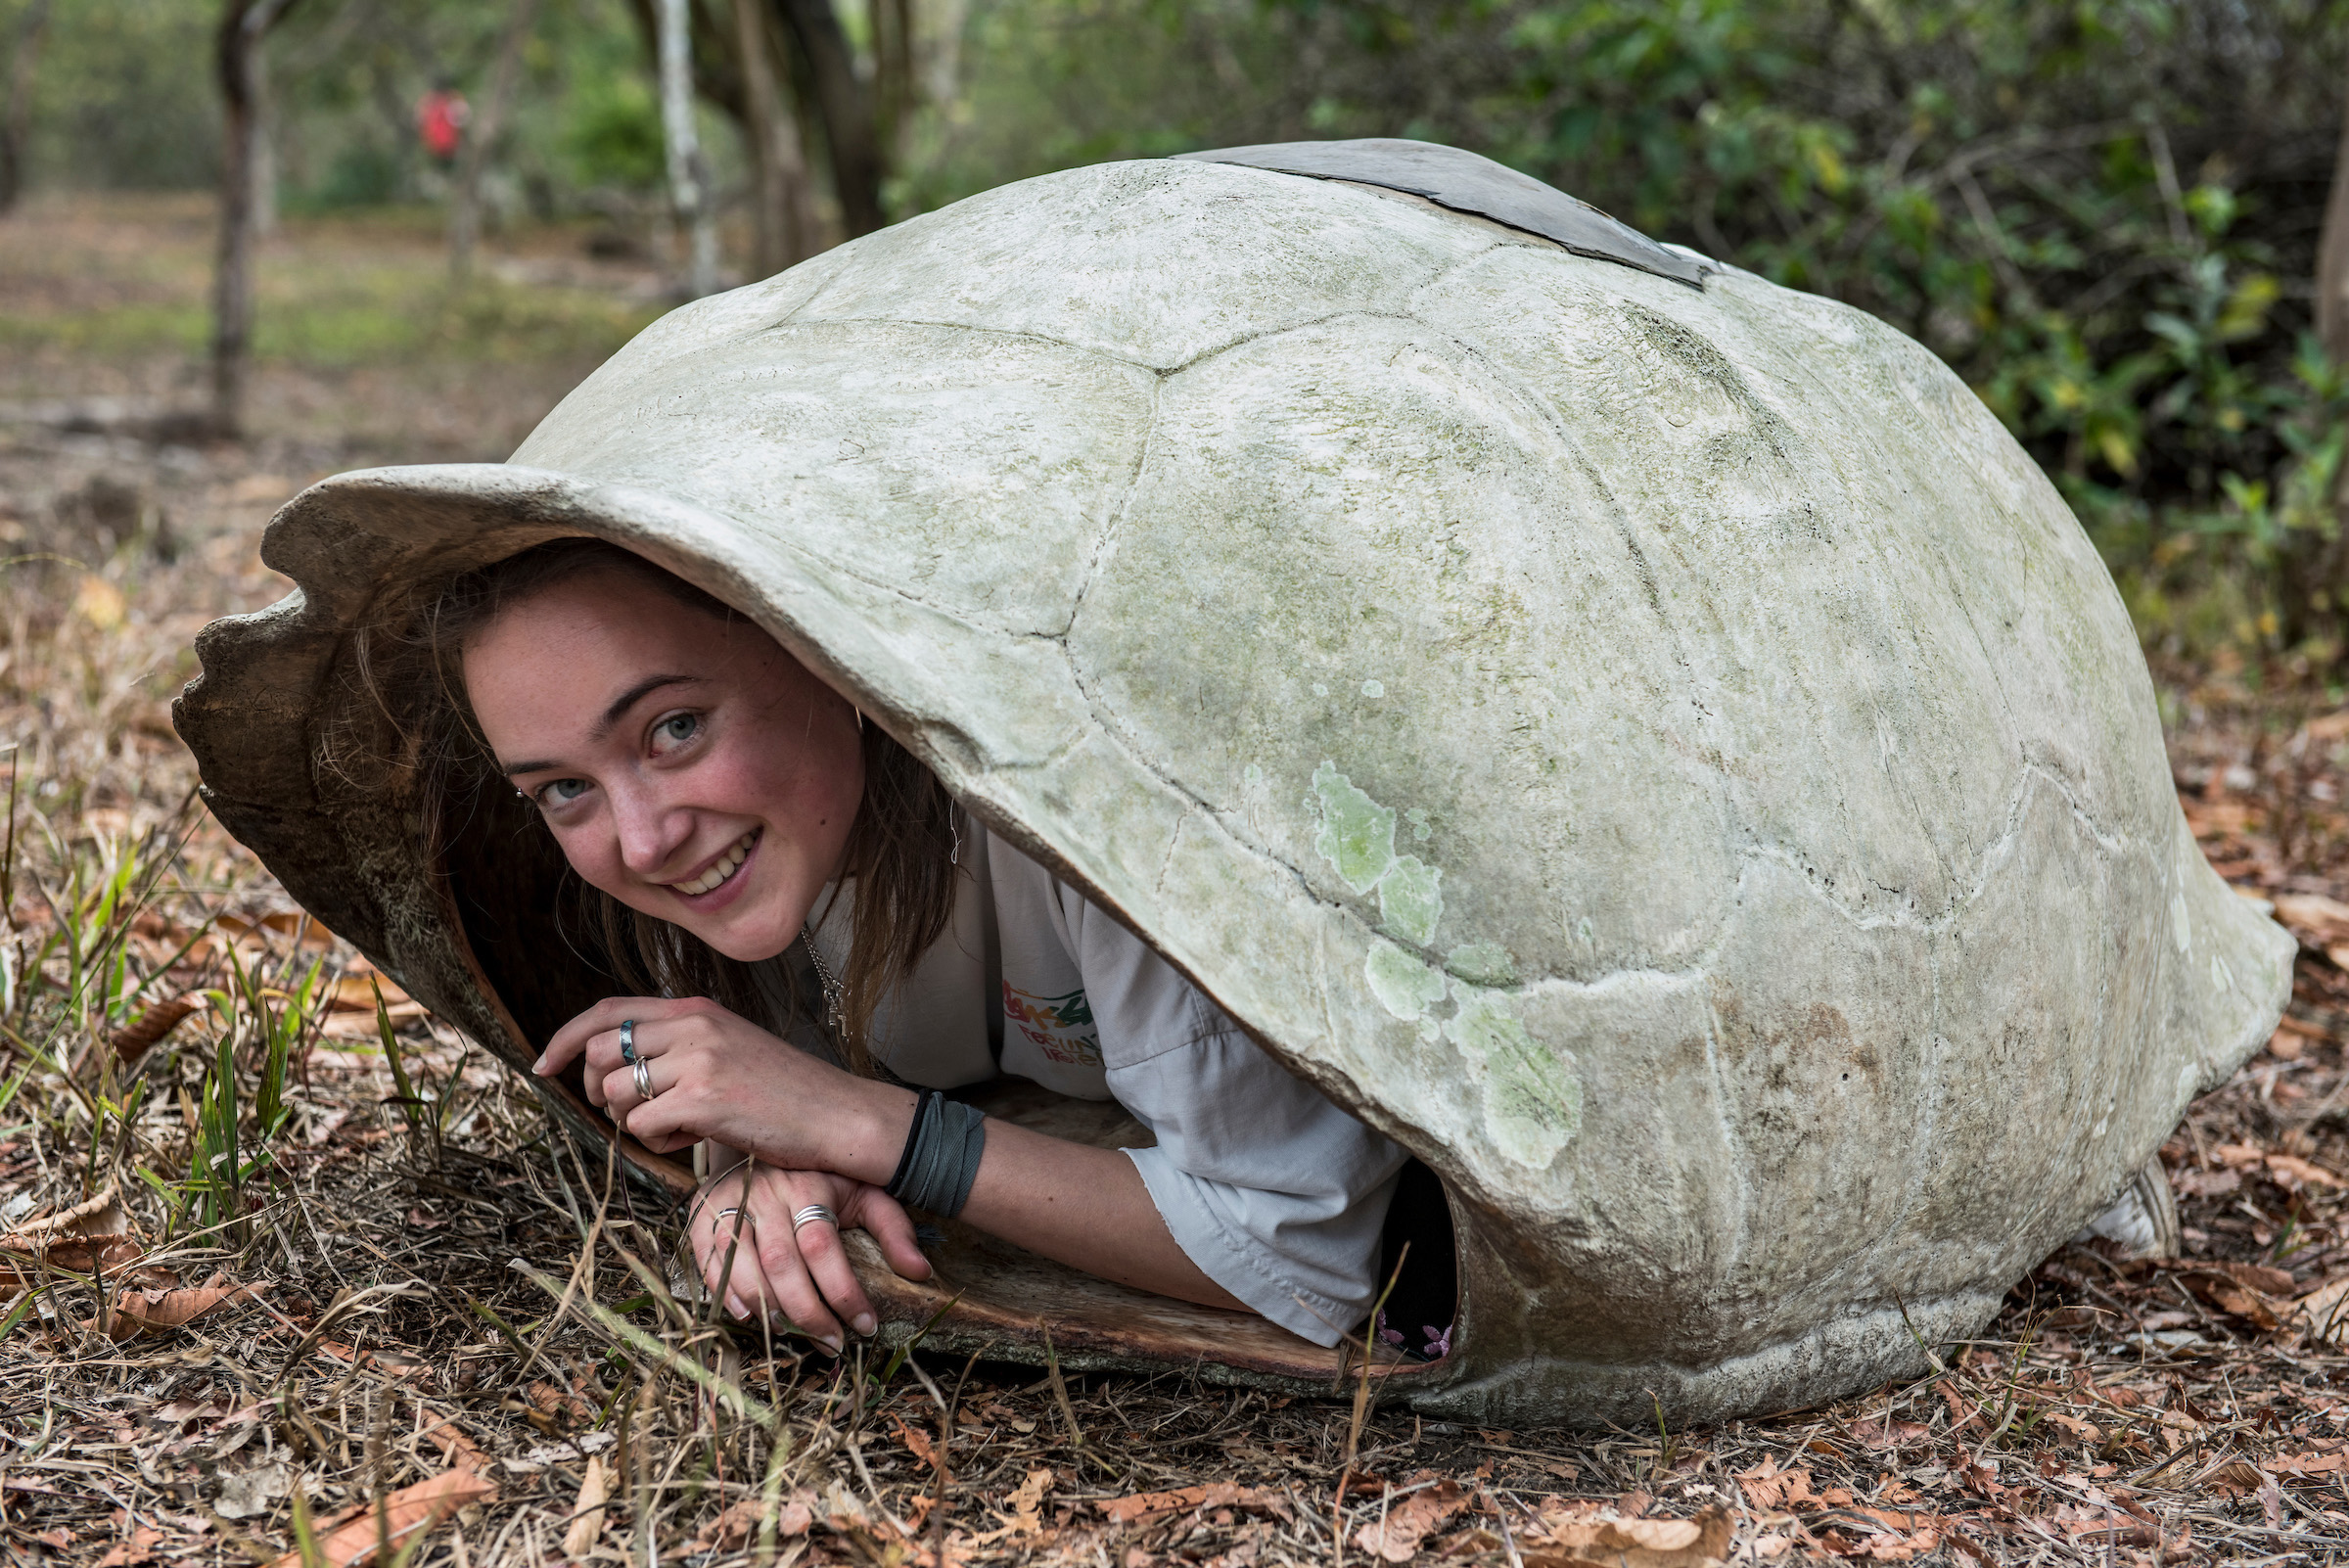 A tourist sits inside of the shell of a tortoise.